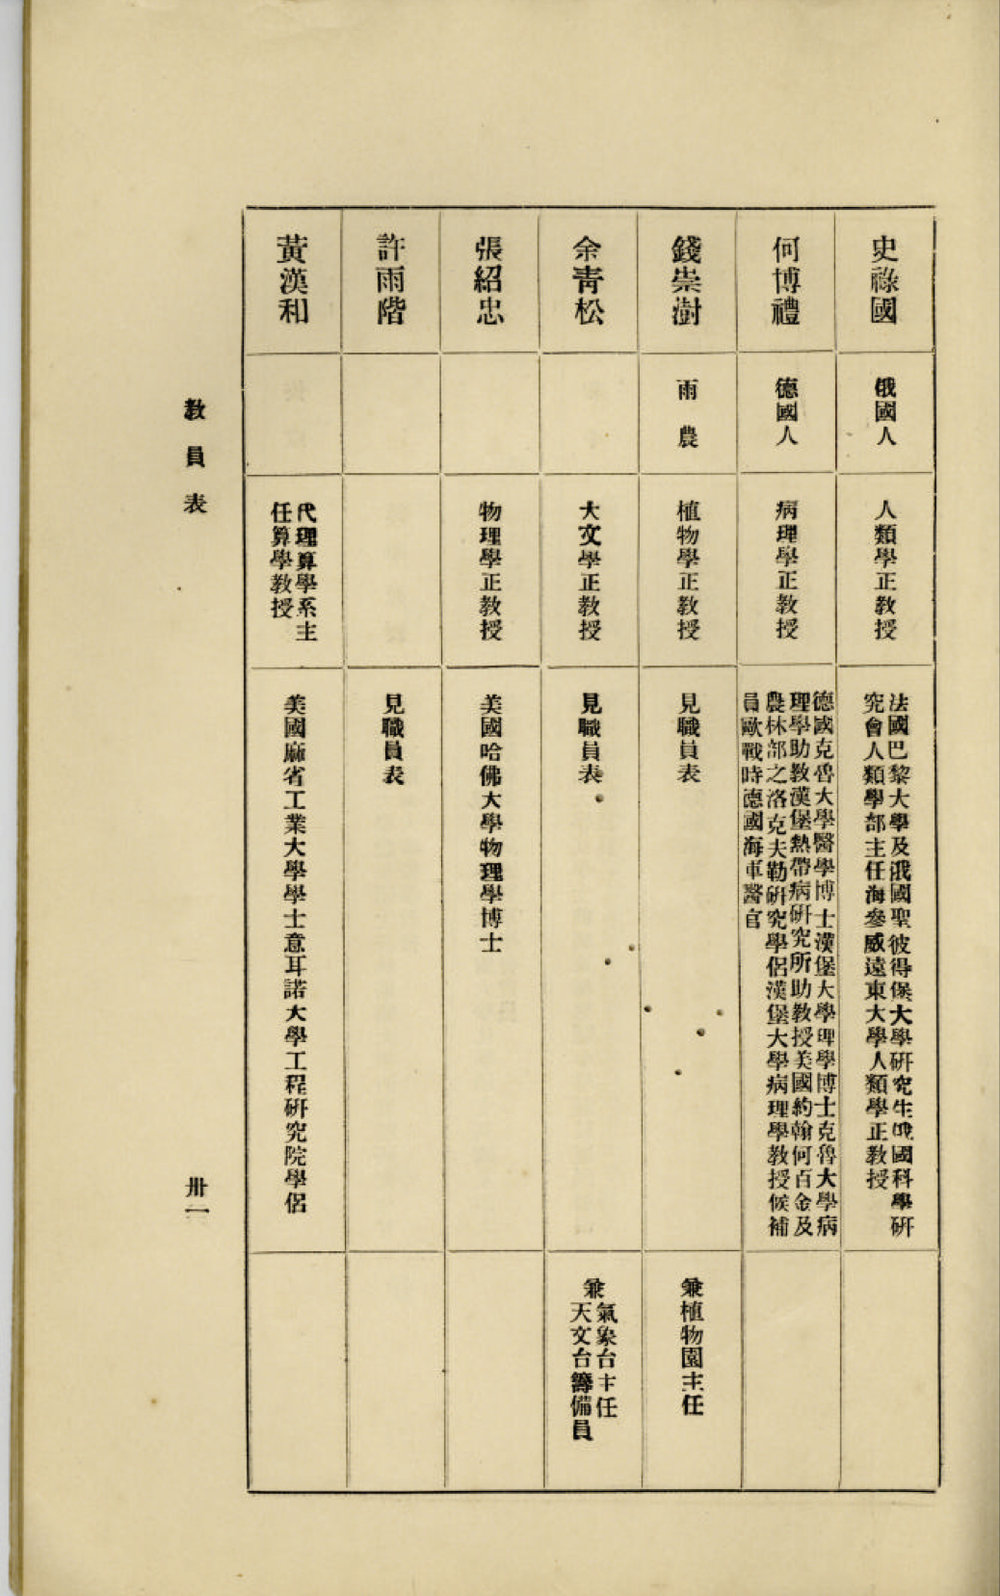 University of Xiamen staff record from 1926 indicating that Han Ho Huang was serving as interim head of the mathematics department. The record shows his MIT degree. Courtesy Dede Huang.